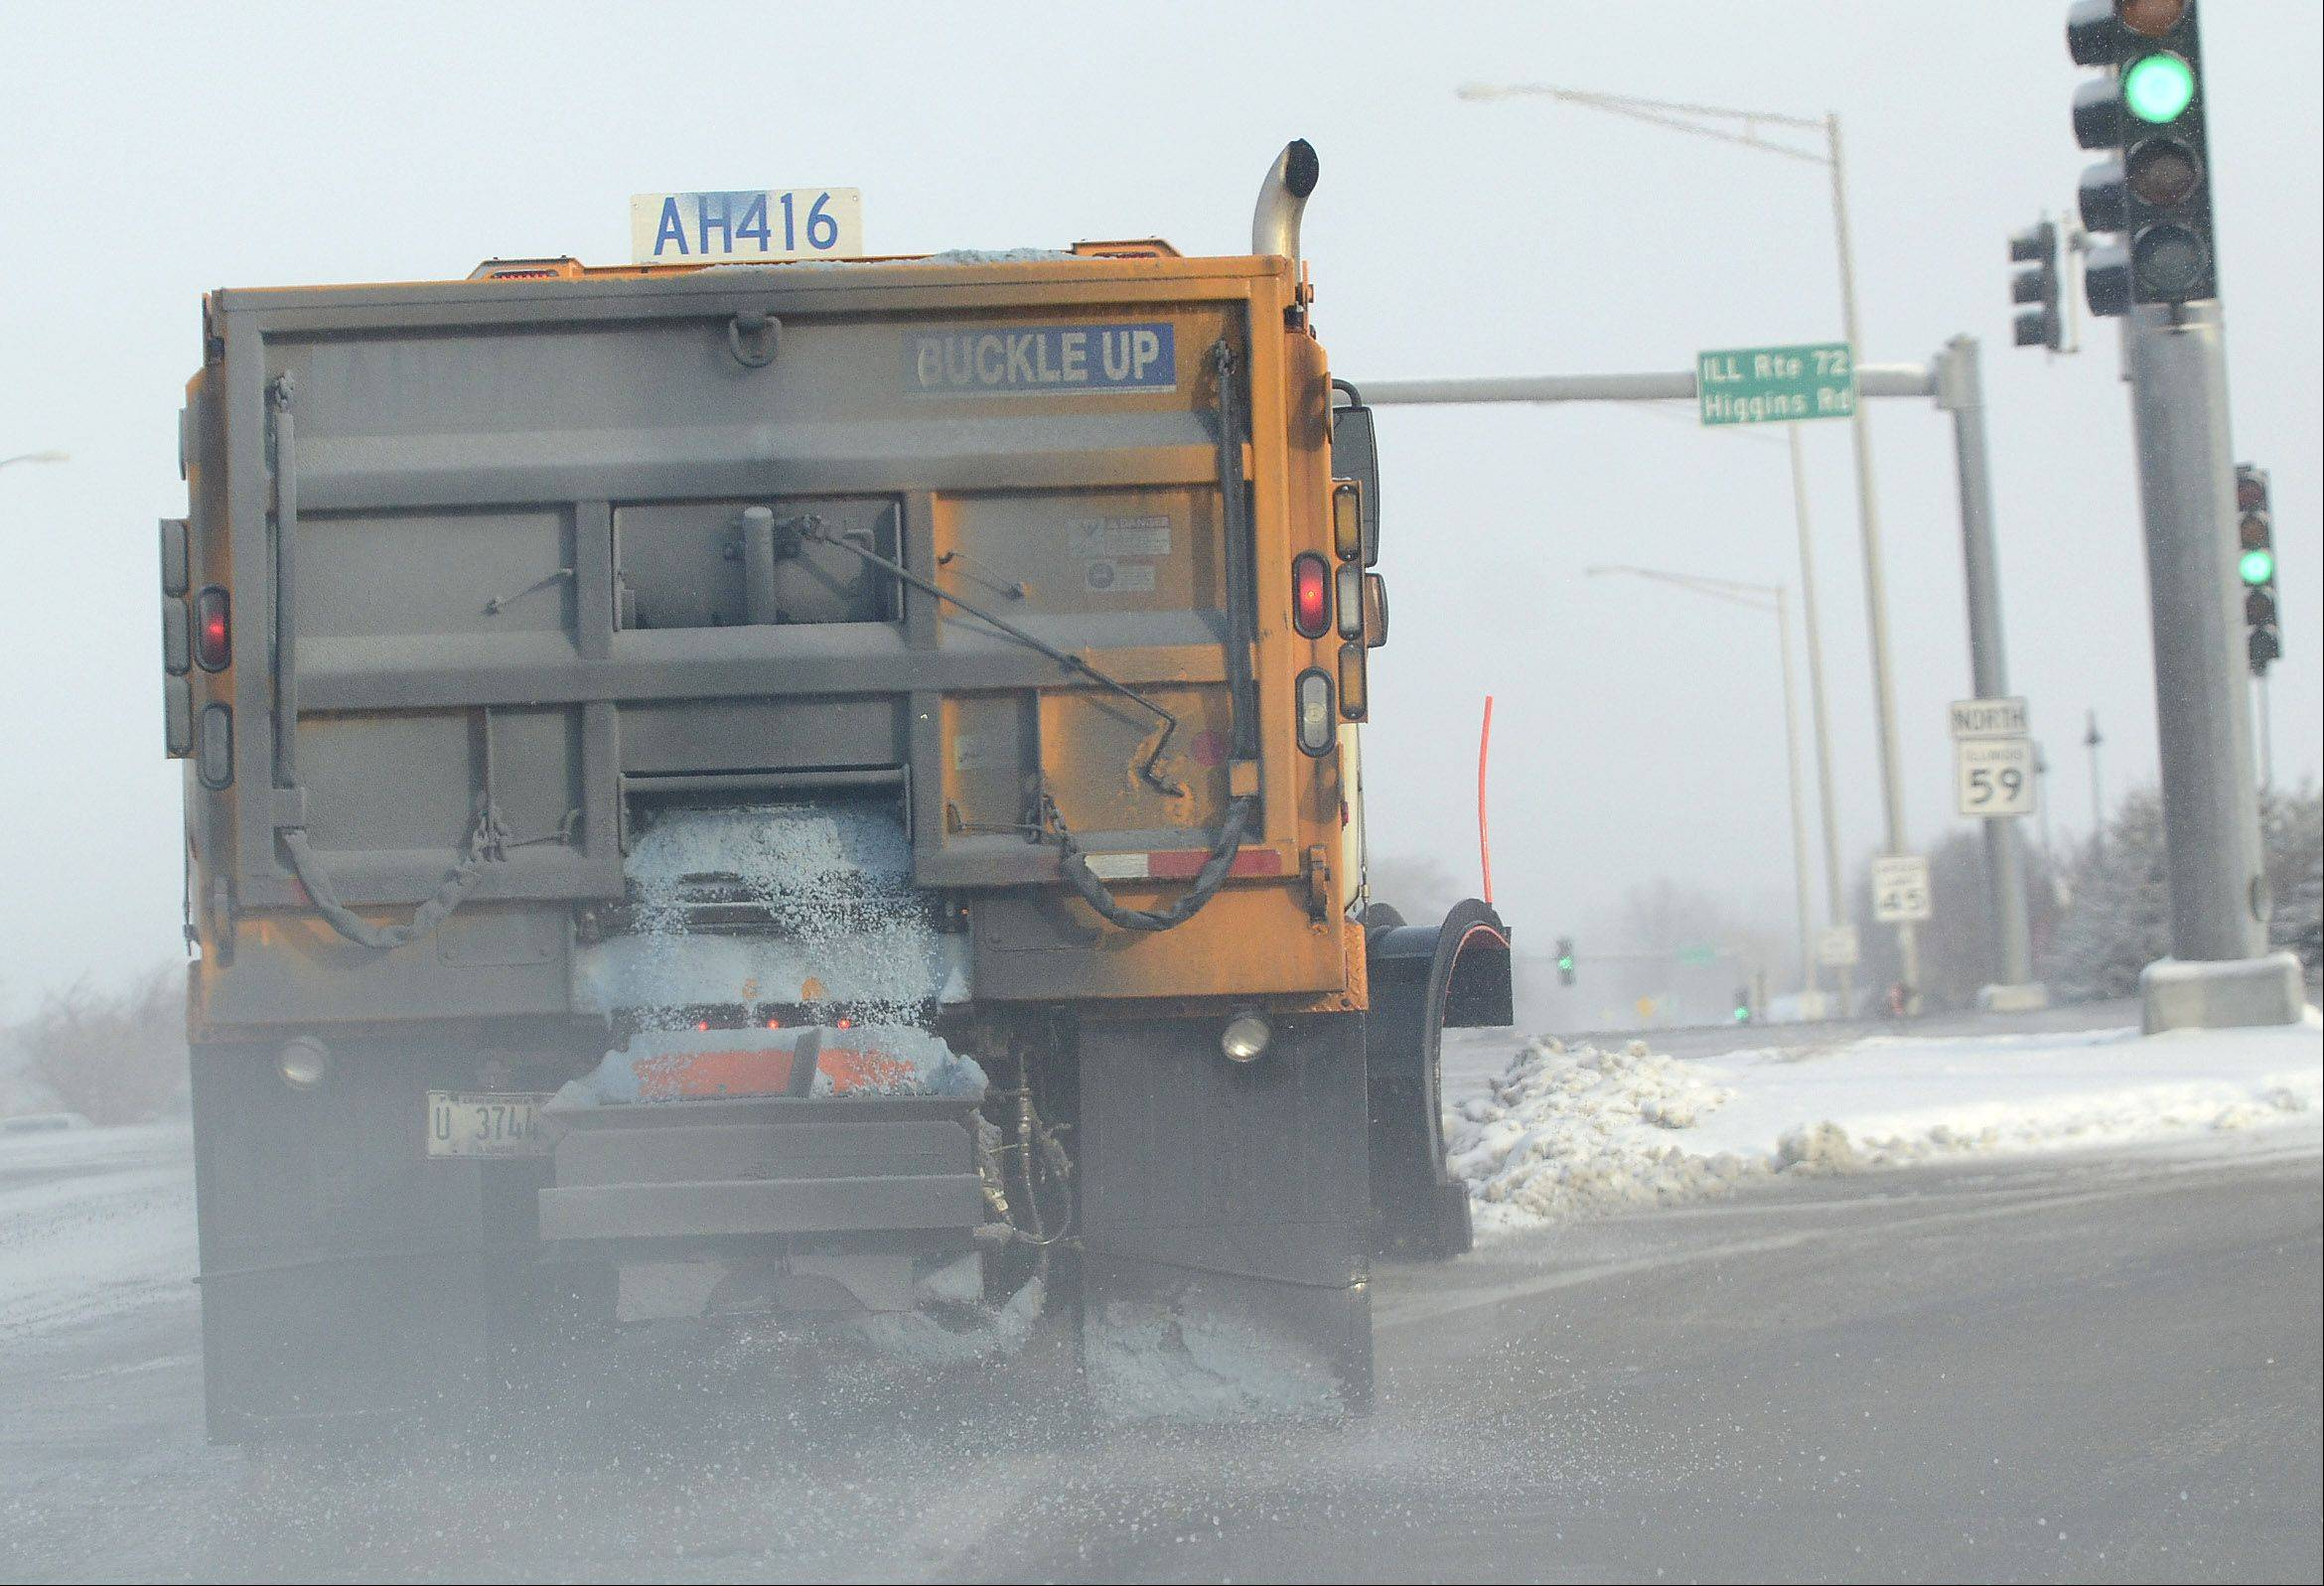 Salt trucks were out in force Wednesday morning along Higgins Road and Route 59 in South Barrington.